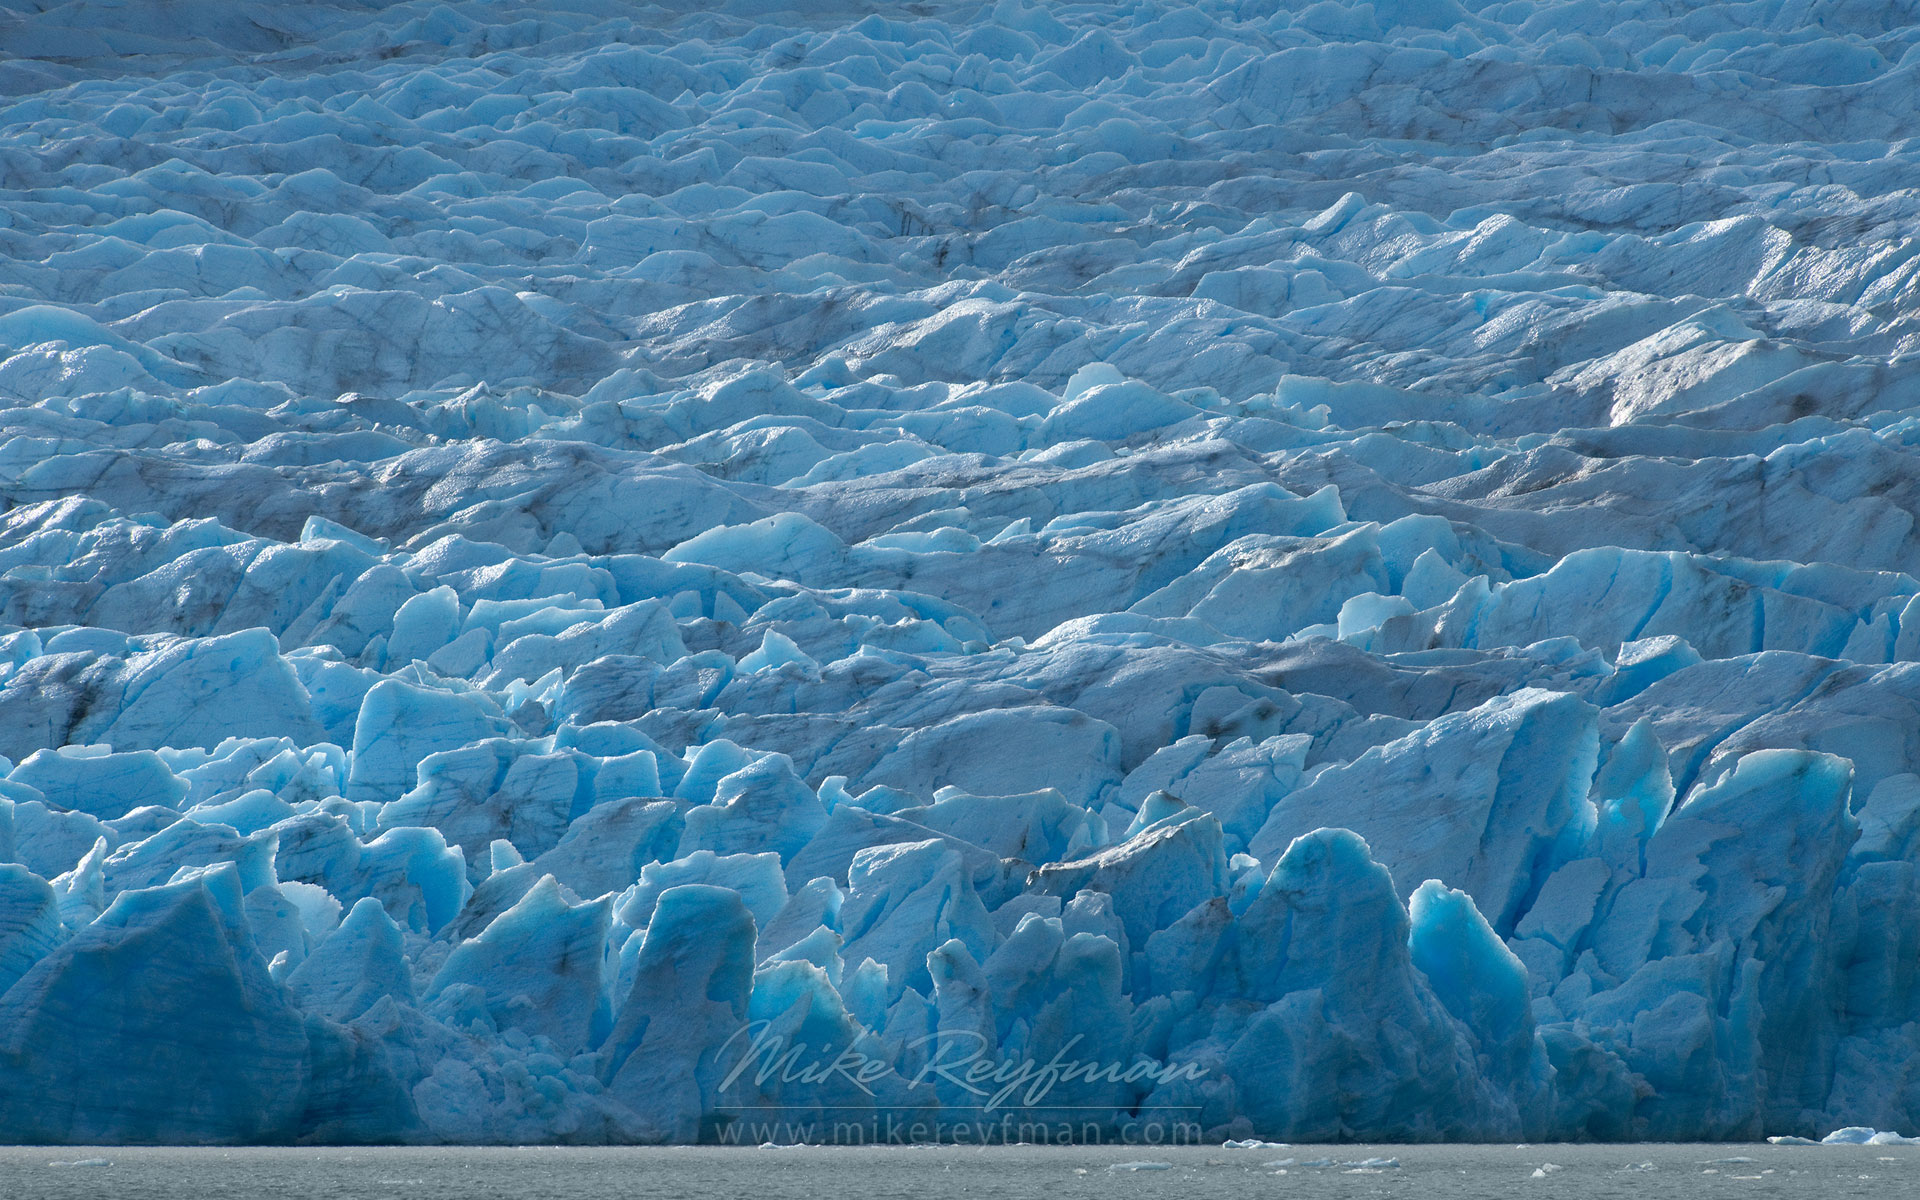 Feeling Blue. Grey Glacier. Southern Patagonia Ice Field, Torres del Paine National Park, Ultima Esperanza Province, Magallanes and Antartica Chilena Region XII, Patagonia, Chile.  - Torres-Del-Paine-National-Park-Patagonia-Chile - Mike Reyfman Photography